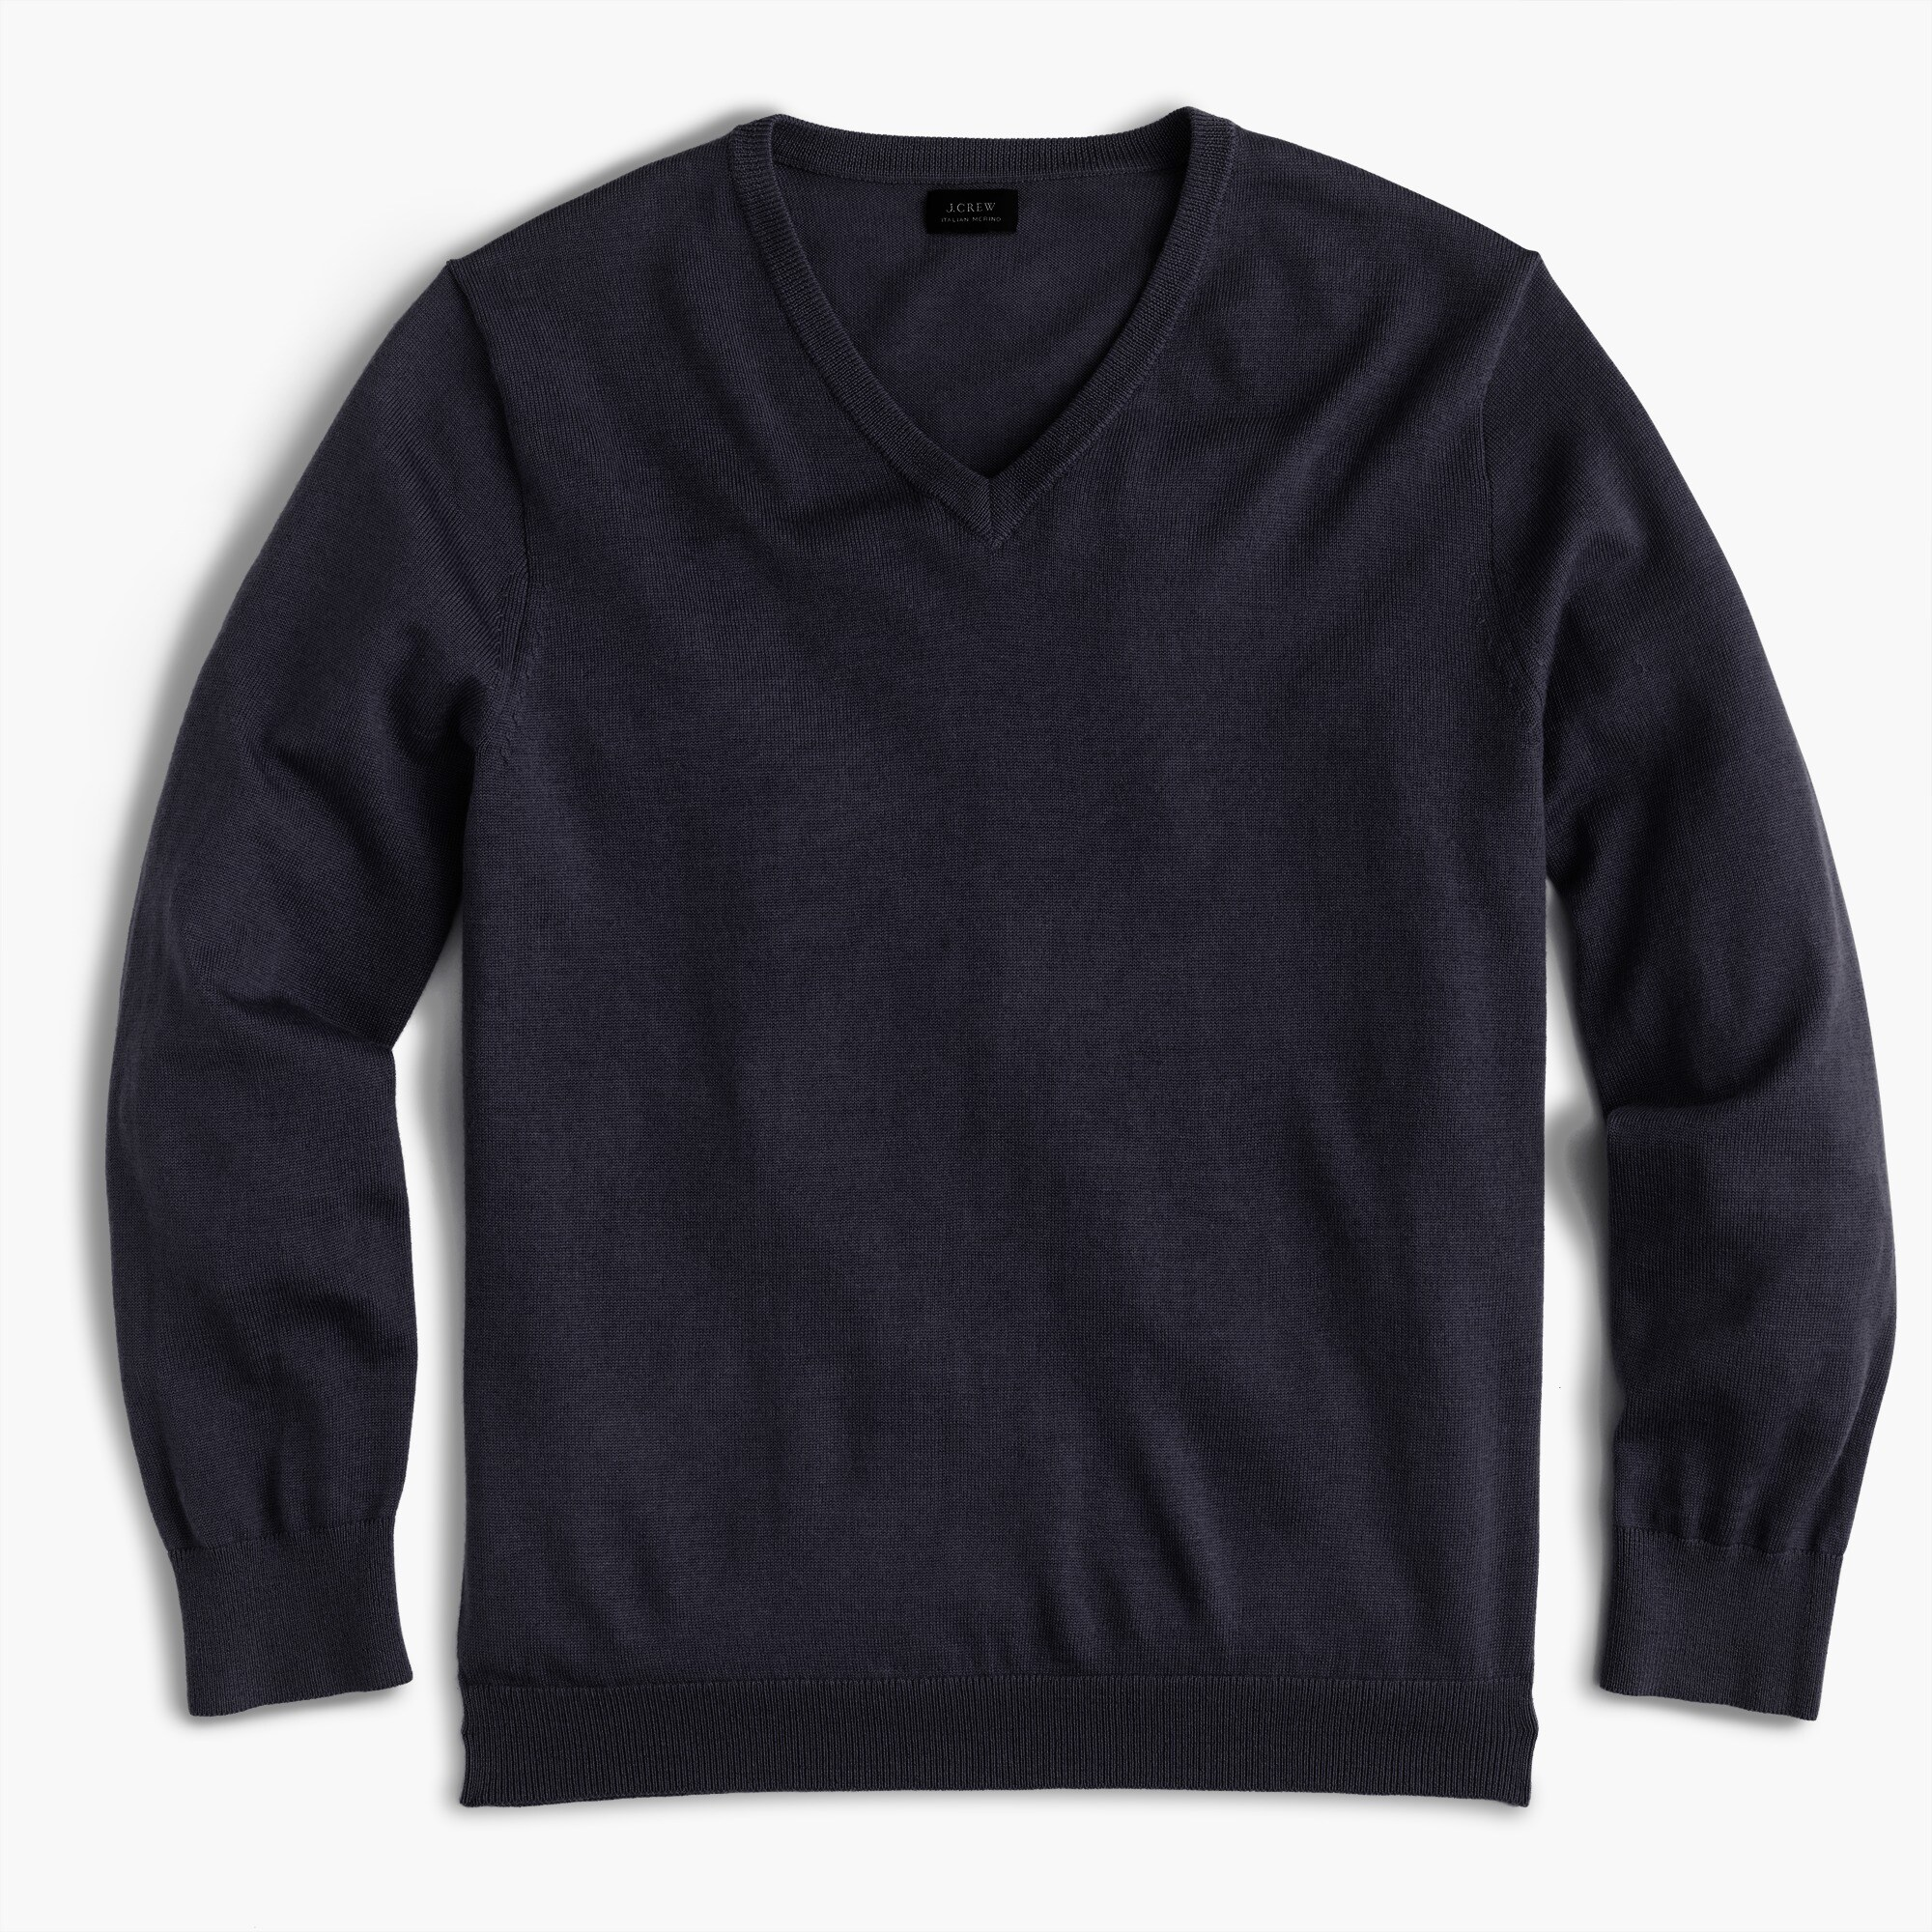 Slim Italian merino wool V-neck sweater